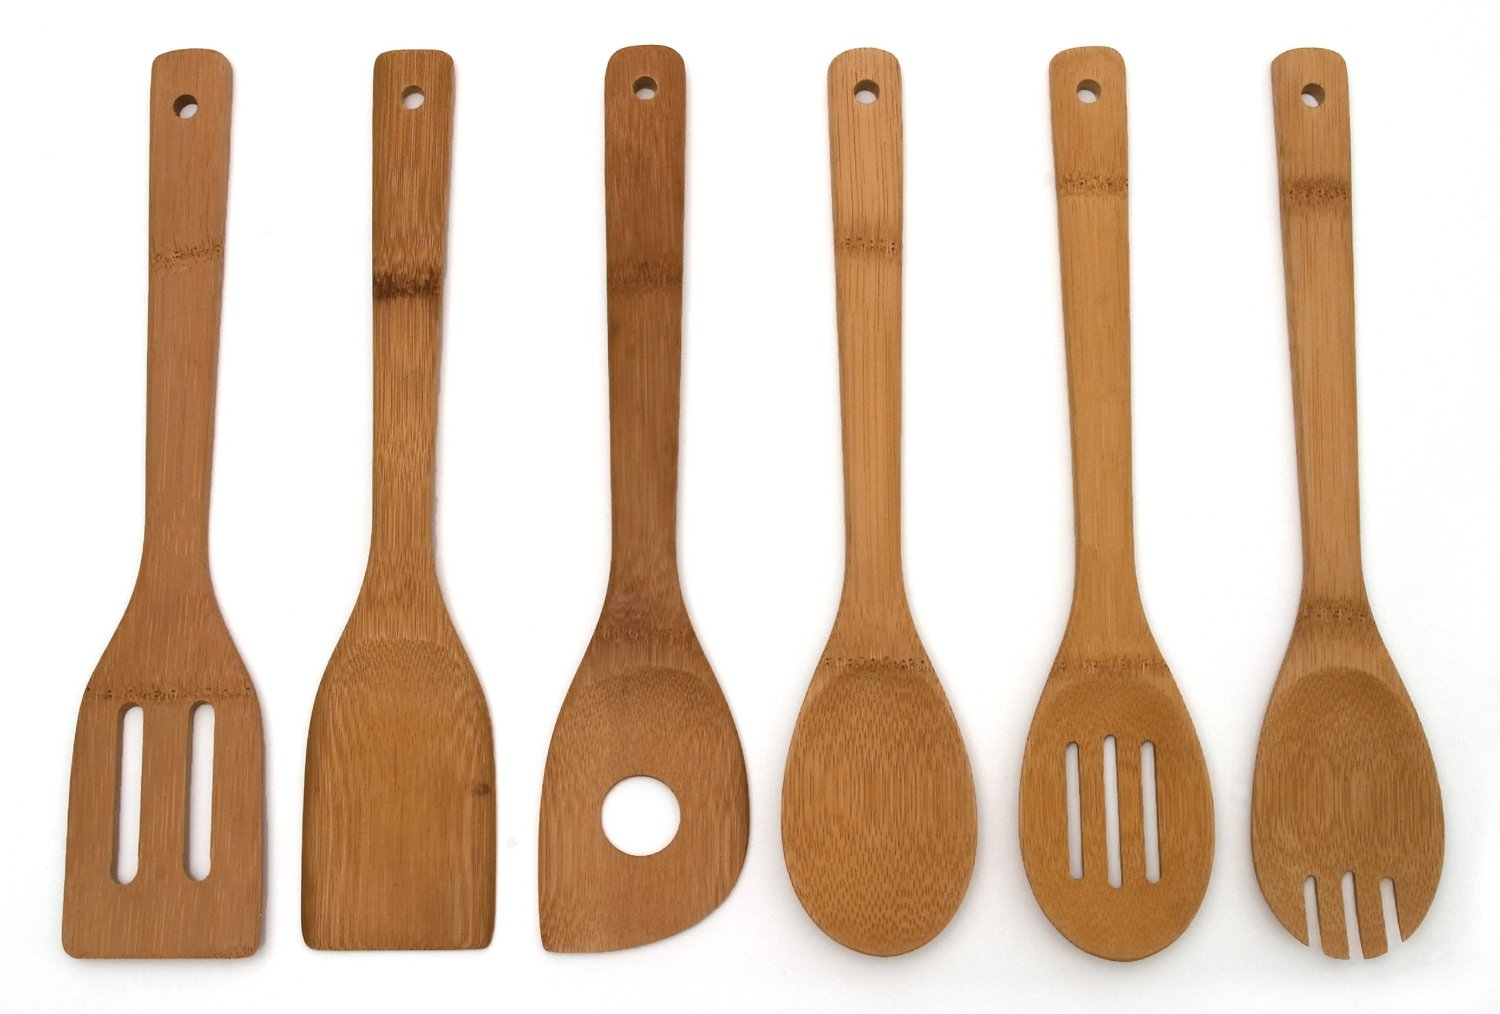 Cook great meals with these cooking tips elisamarshall15 for Wooden kitchen spoons